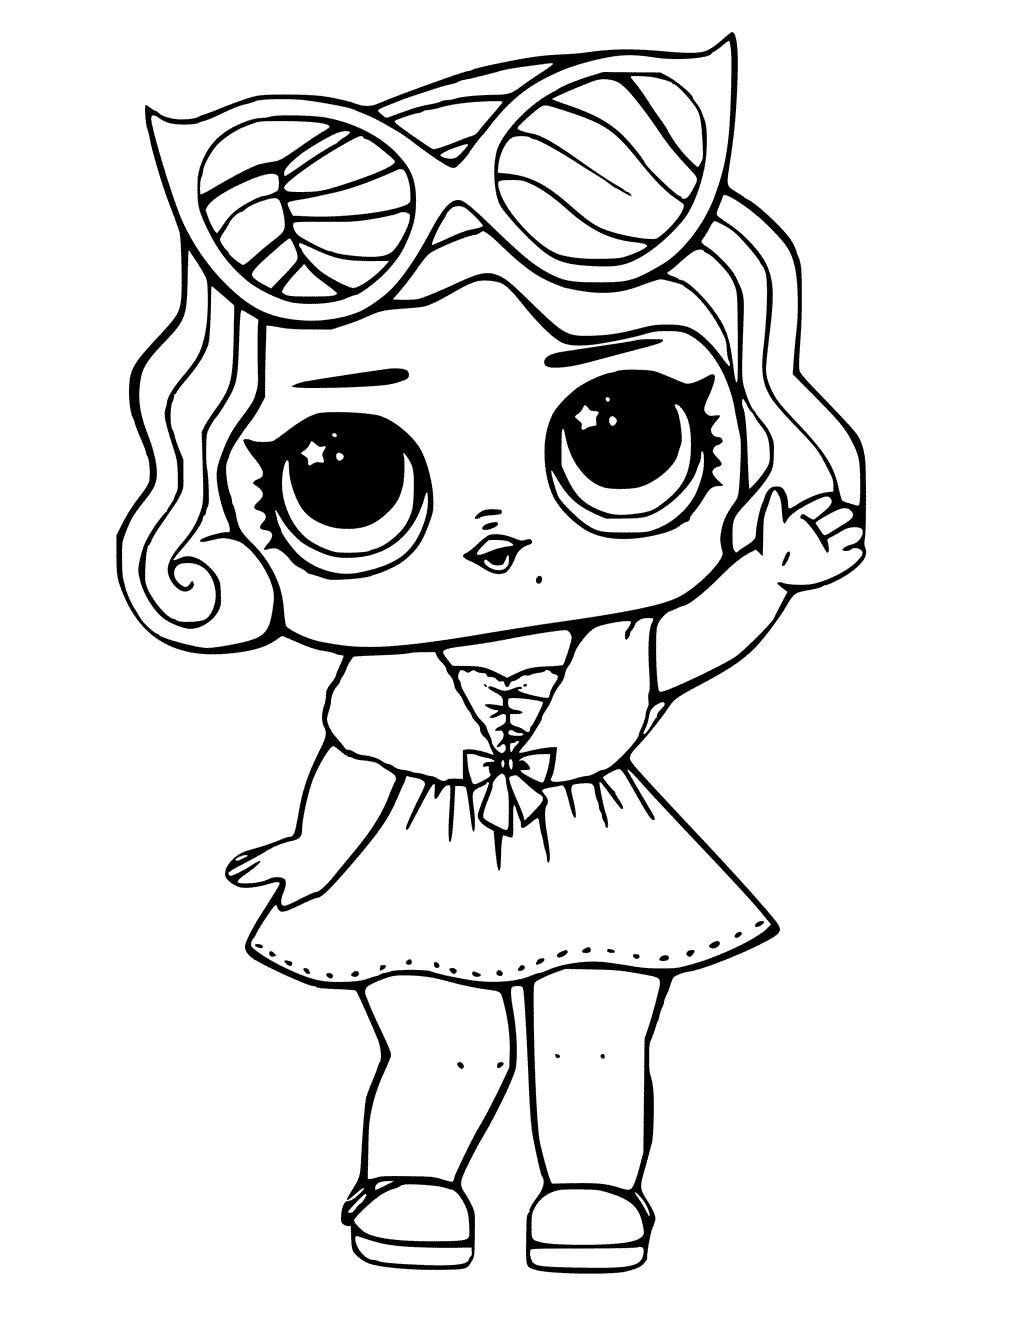 - LoL Dolls Coloring Pages - Coloring Home